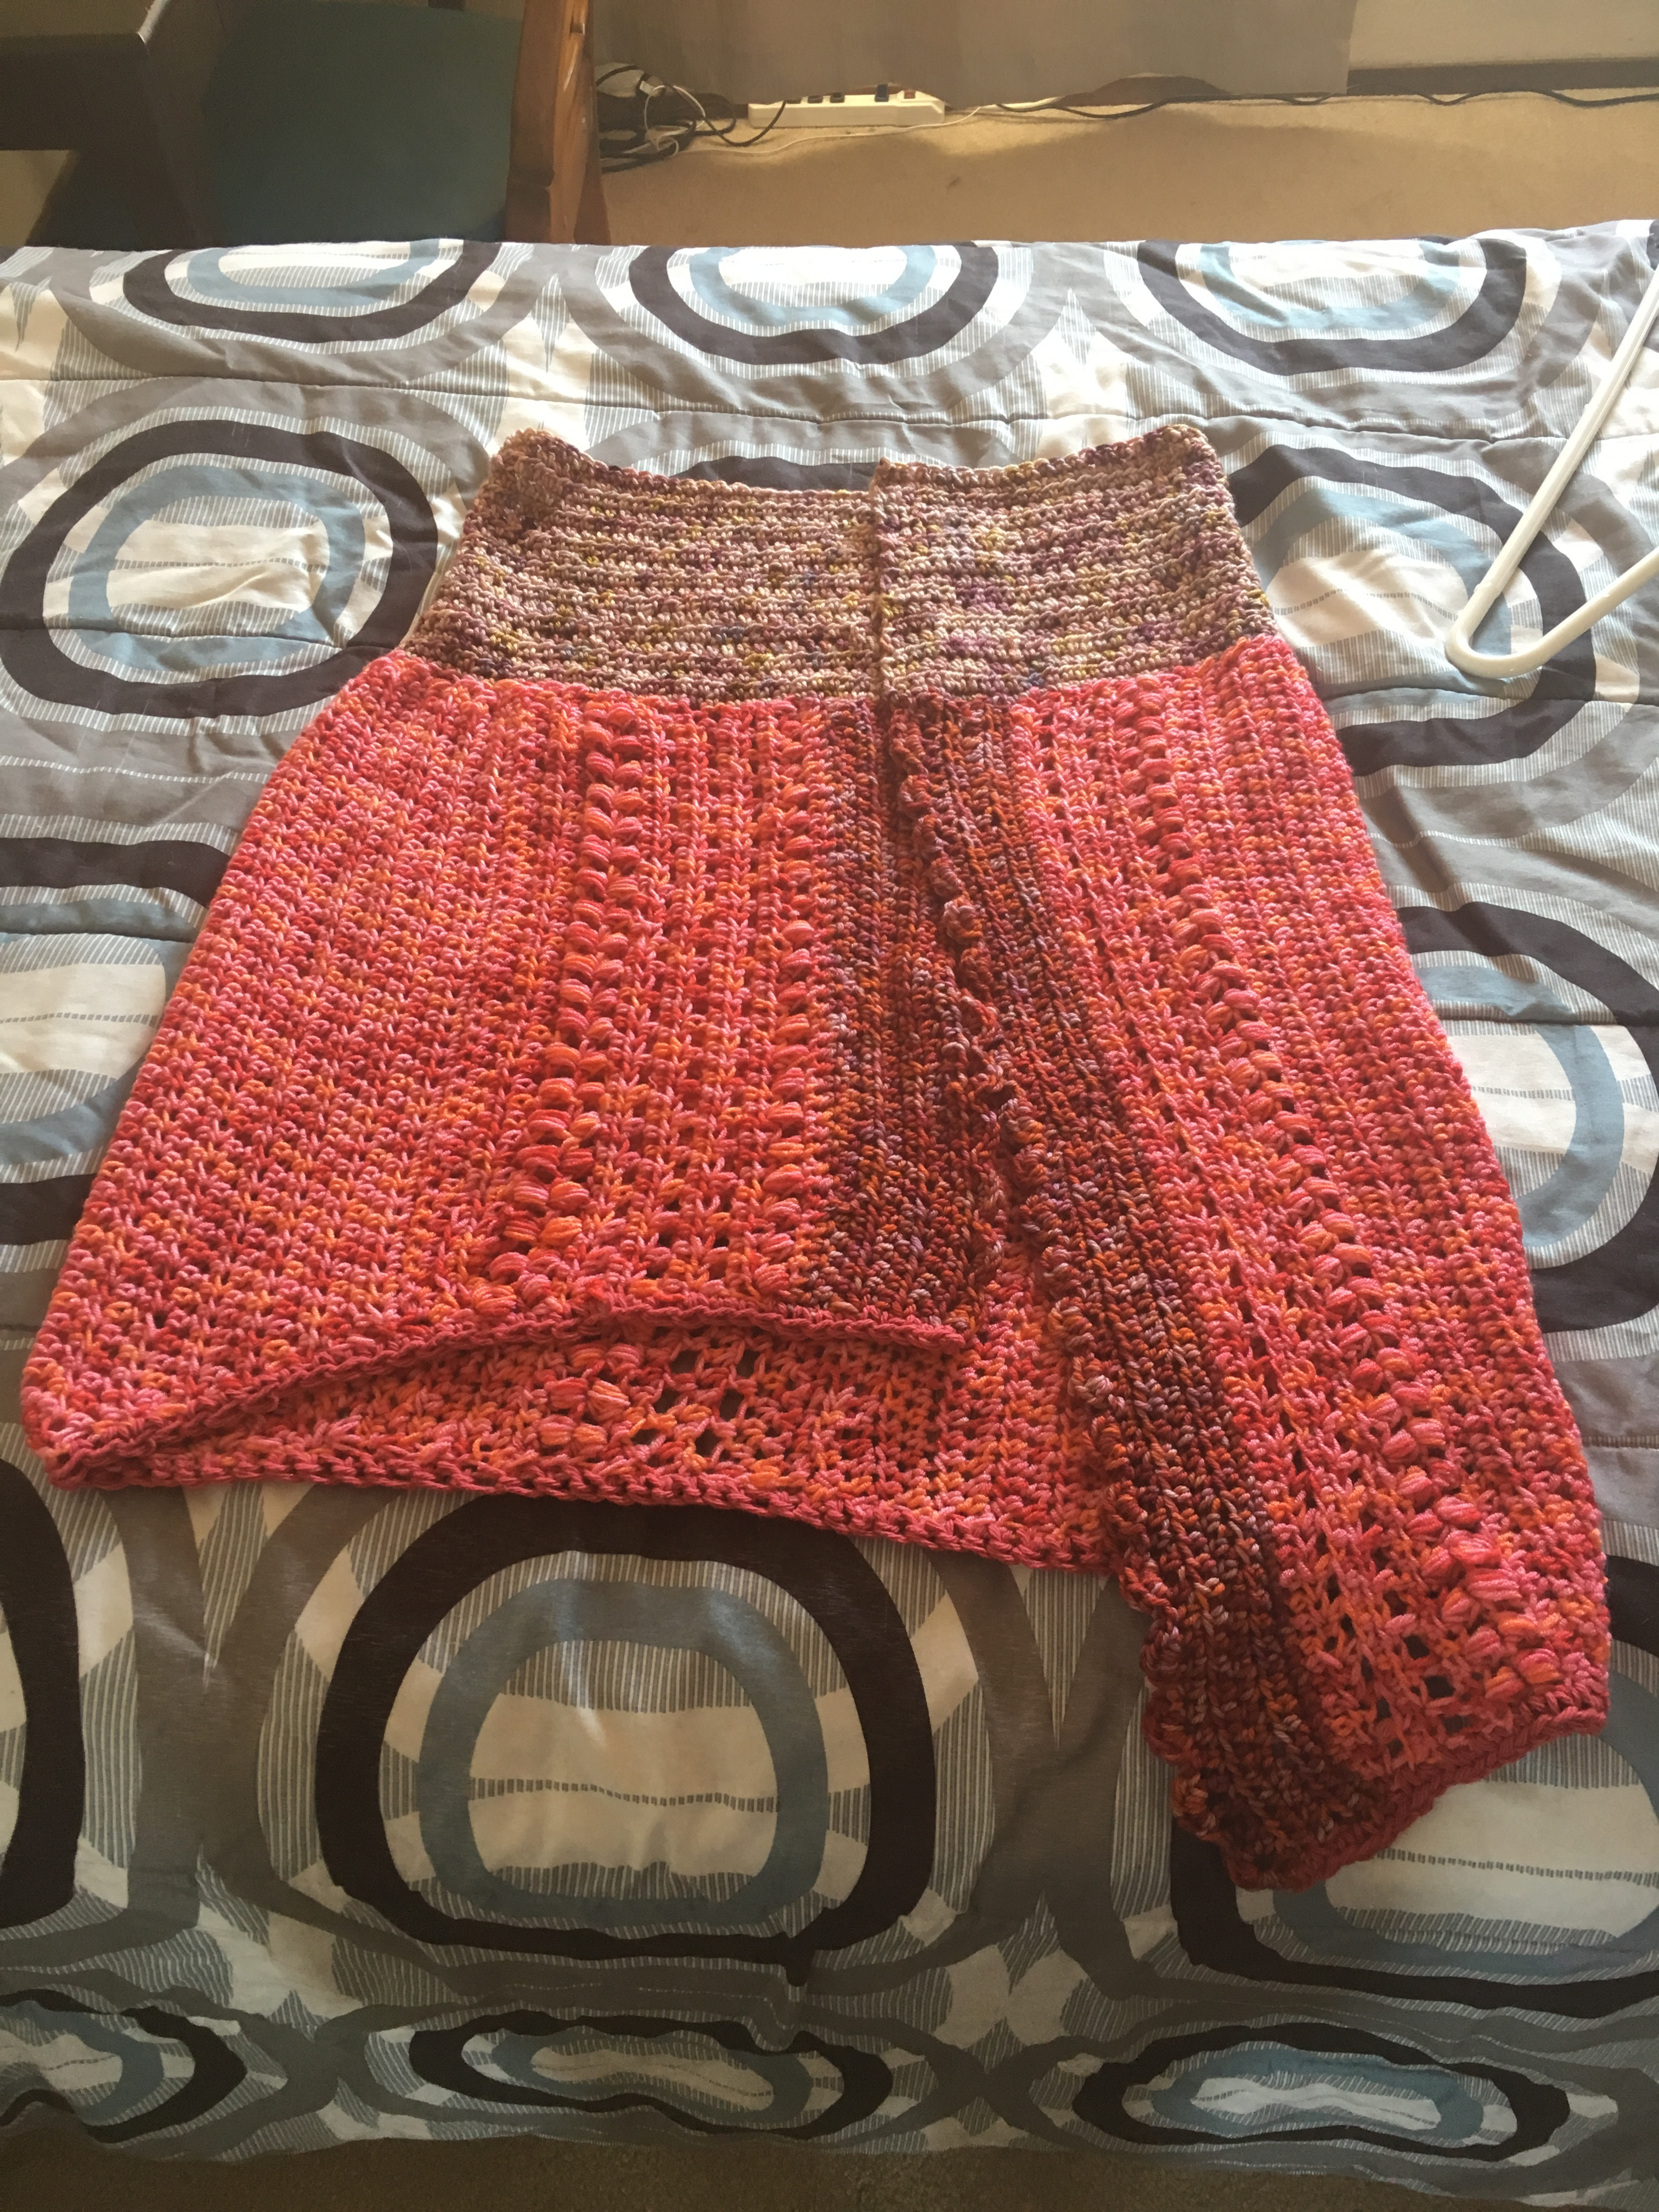 finished shawl with red and pink yarn